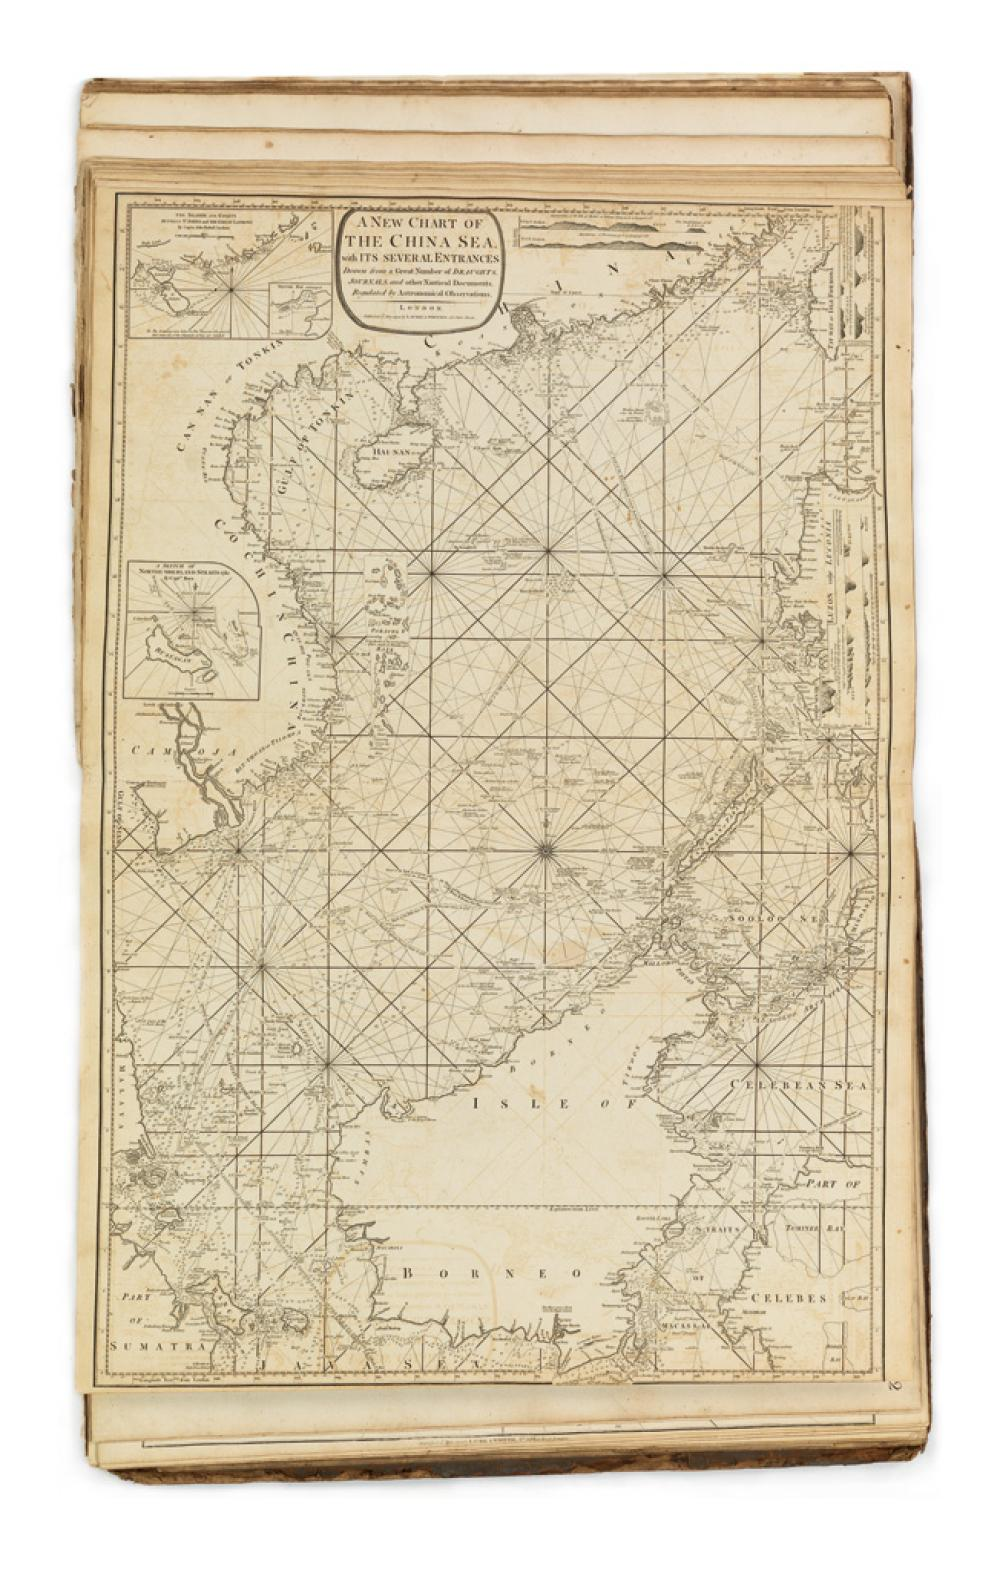 LAURIE, ROBERT AND WHITTLE, JAMES. The Complete East-India Pilot, or Oriental Navigator: Being an Extensive Collection of Charts,